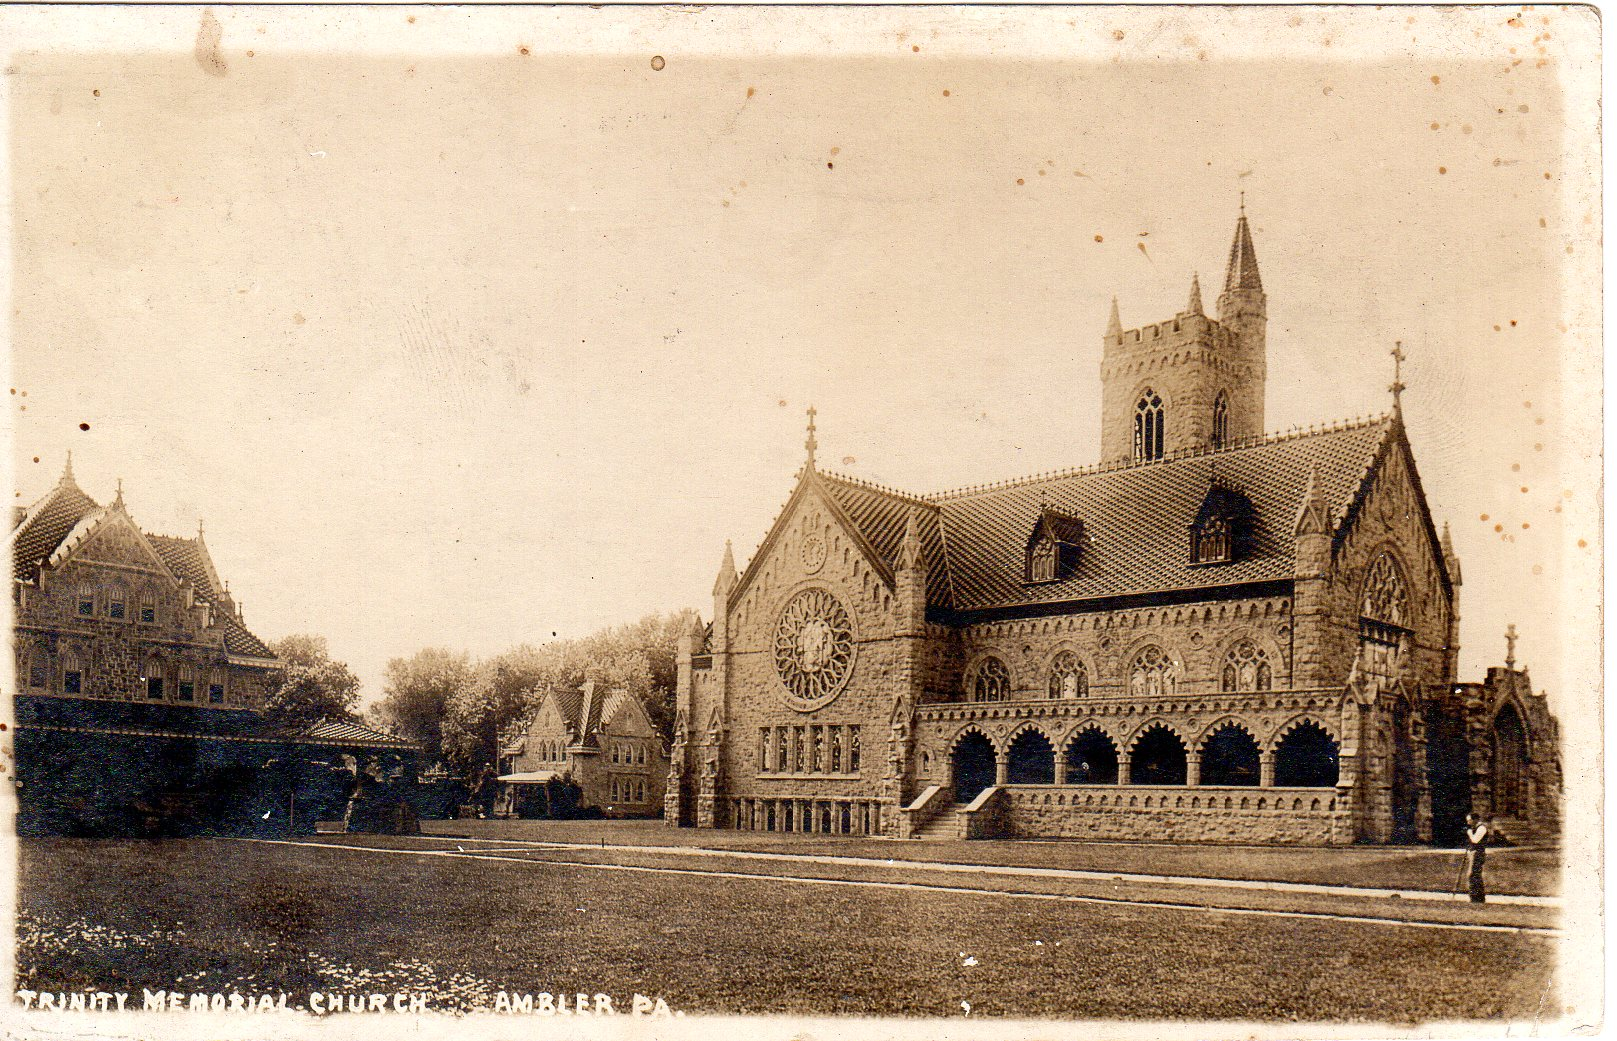 Post Card Collection (E Simon)_2682_24_Trinity Memorial Church, Ambler, Pa